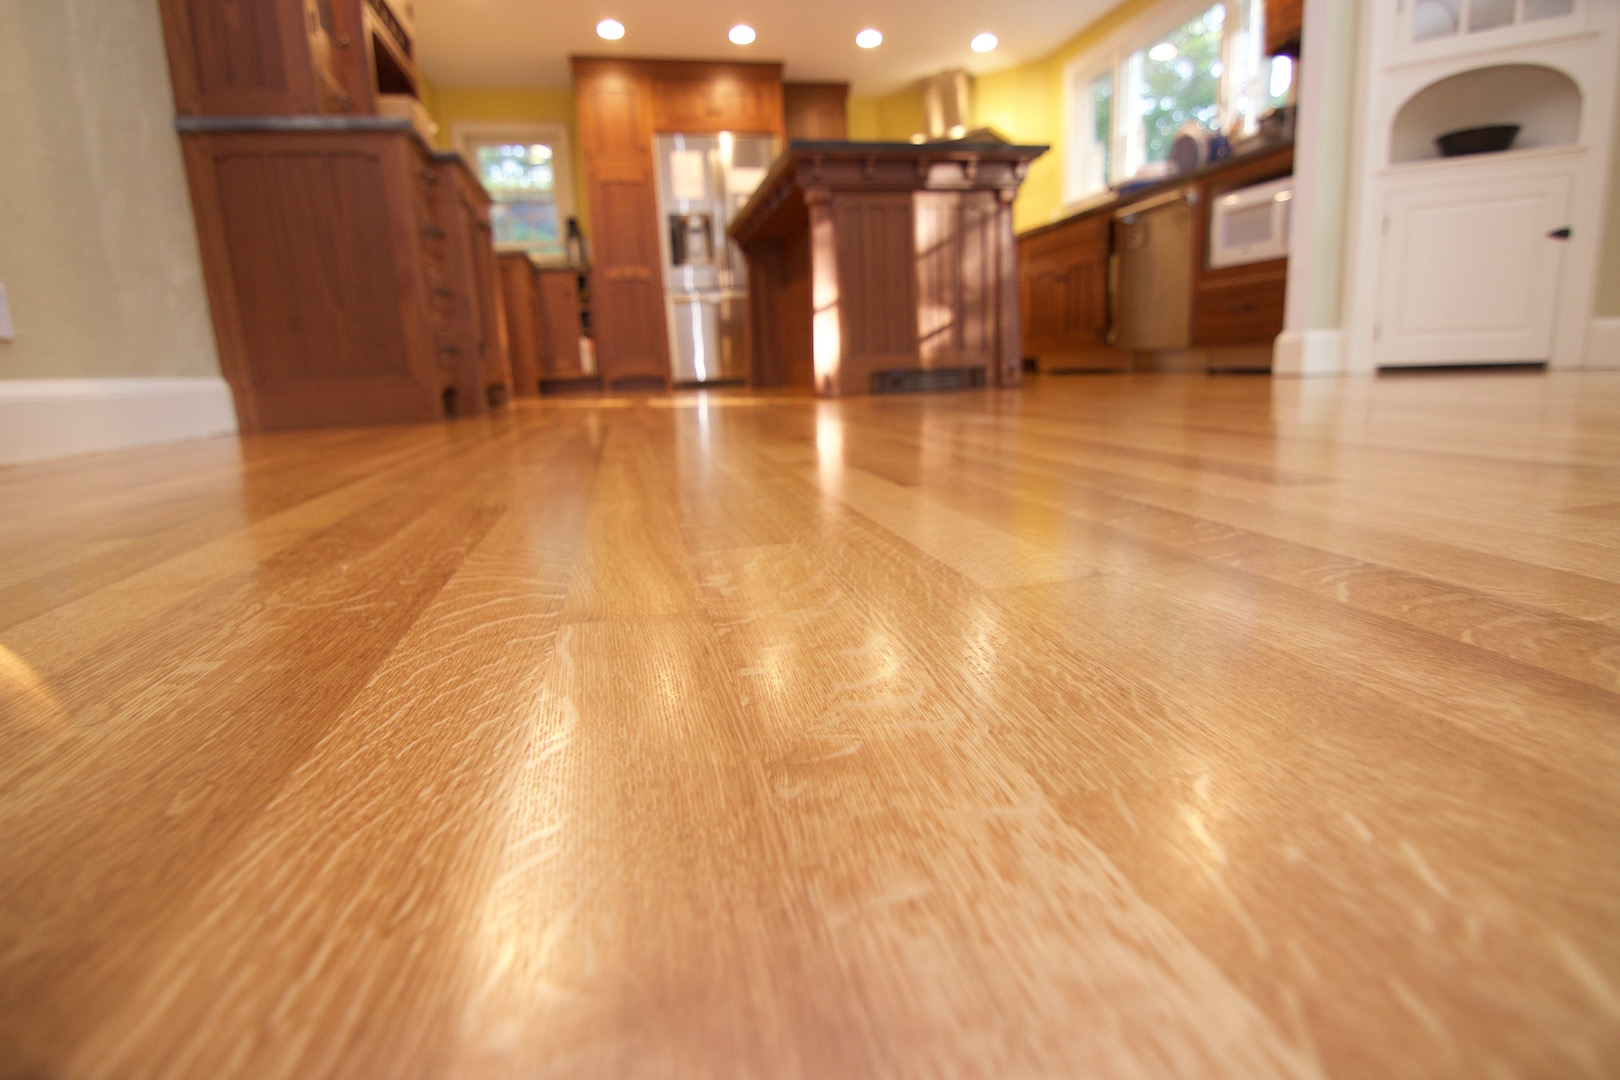 Polyurethane floor finish, Effortlessly apply like a pro